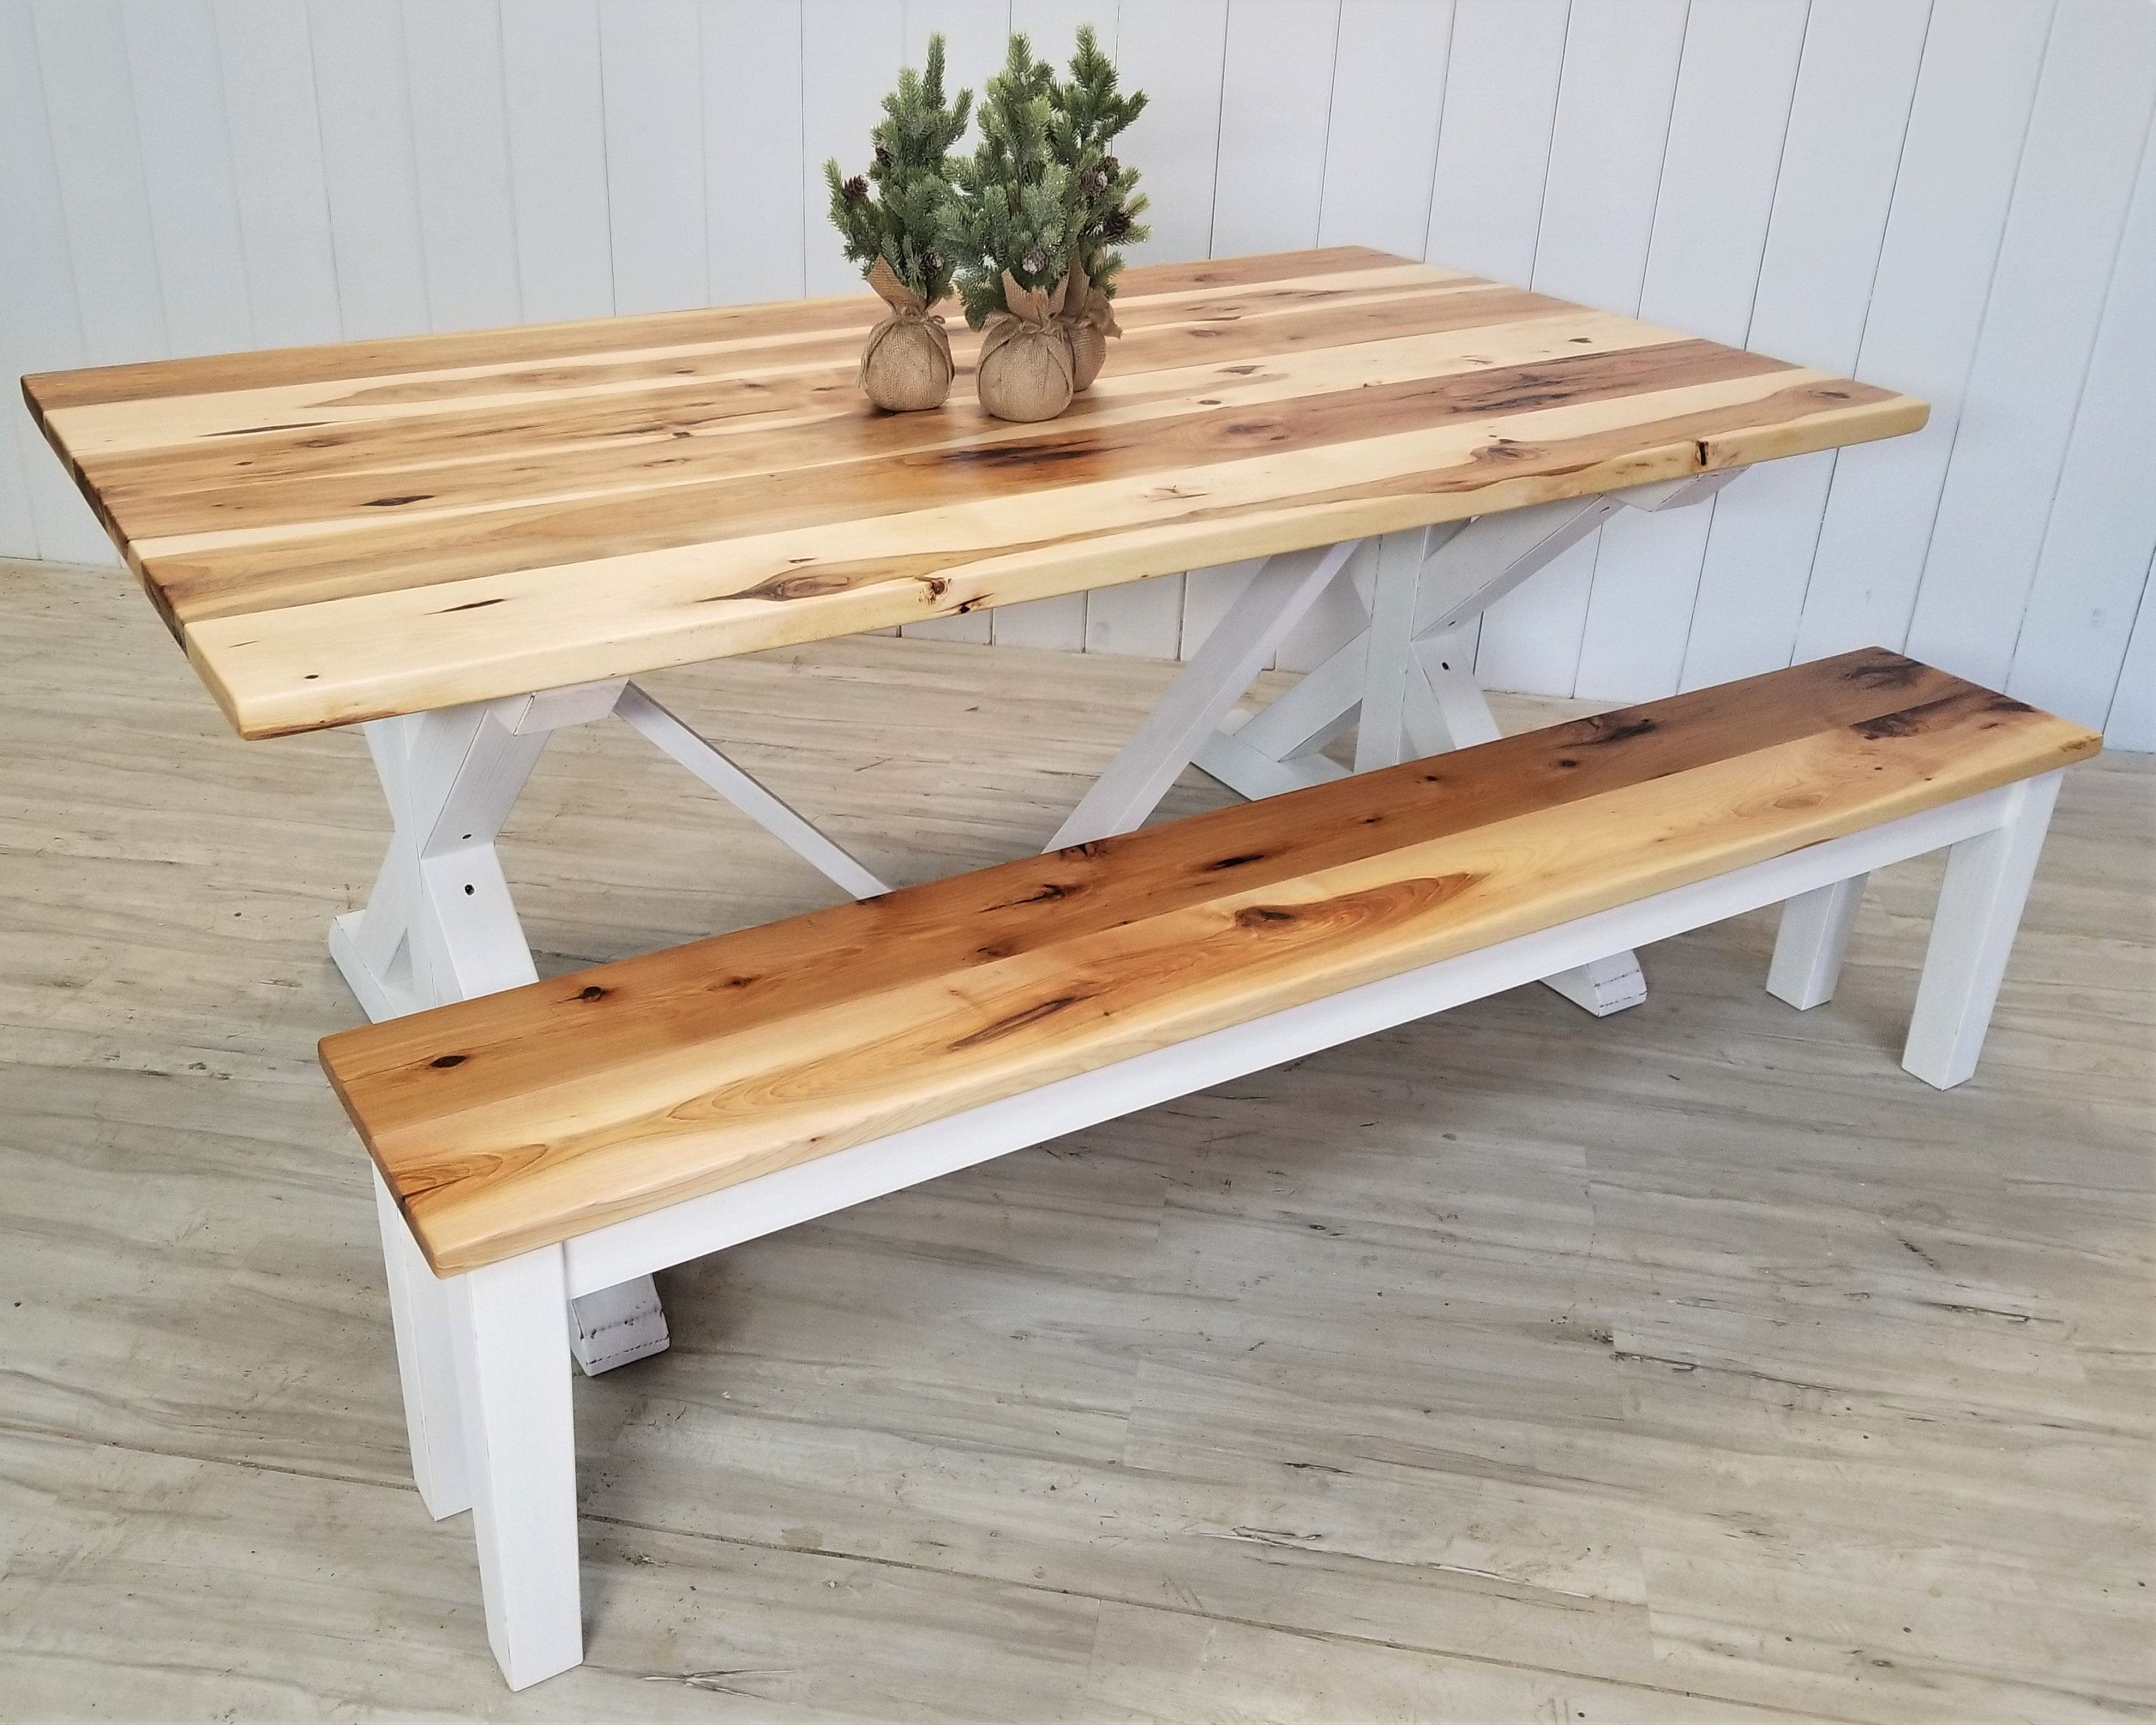 Customize This Rustic Hickory Farmhouse Table Bench Set Rustic Hickory Farmhouse Table In 2020 Farmhouse Table With Bench Trestle Dining Tables